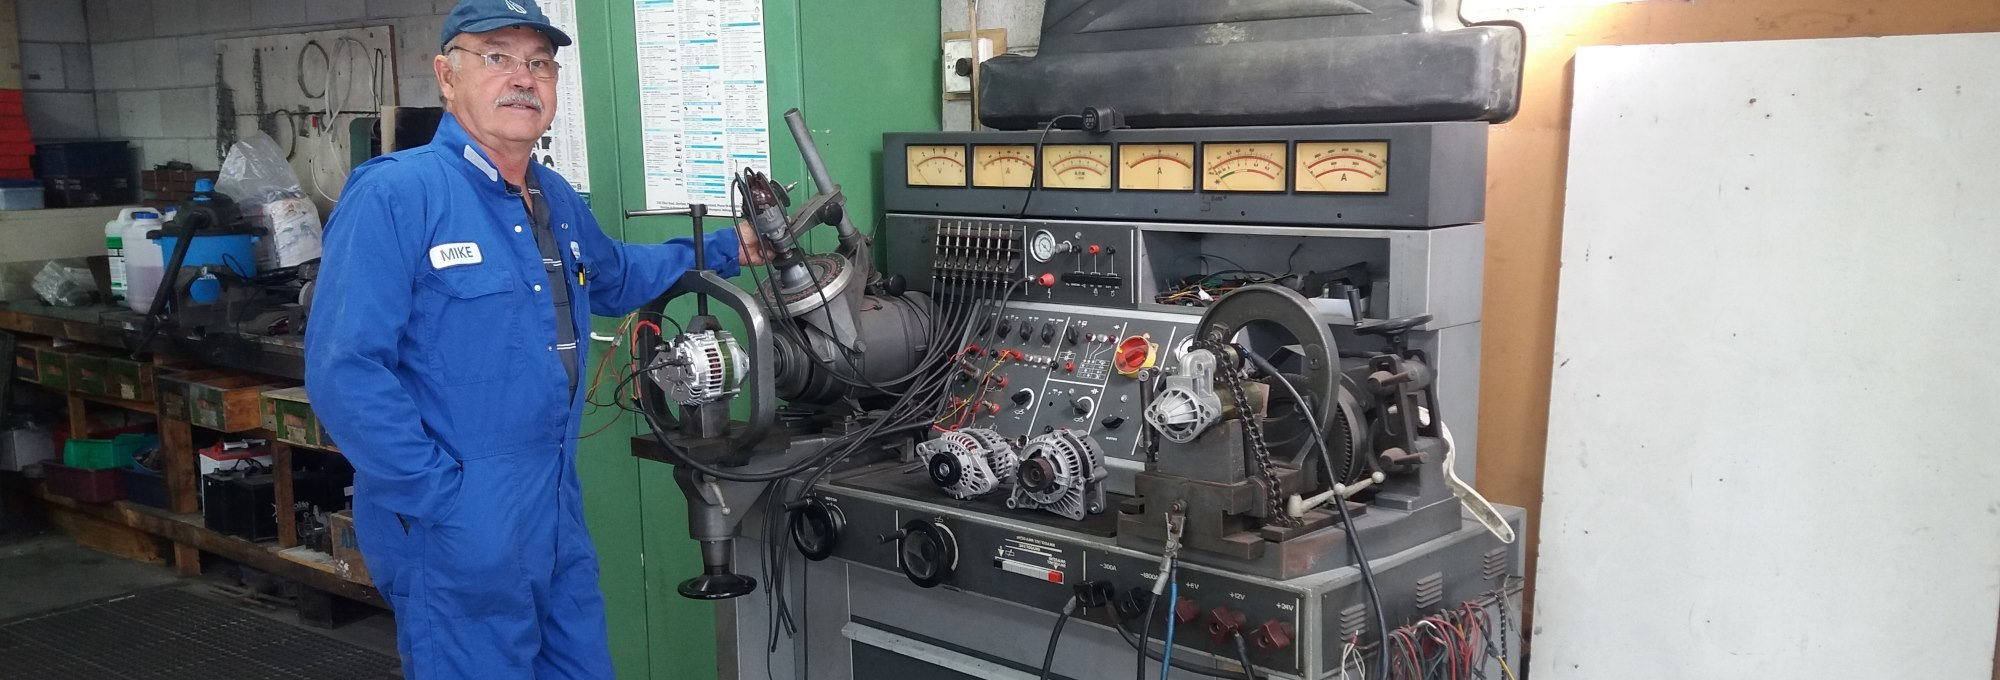 Got alternator or starter motor problems? Mike Barlow Auto Electrical can help